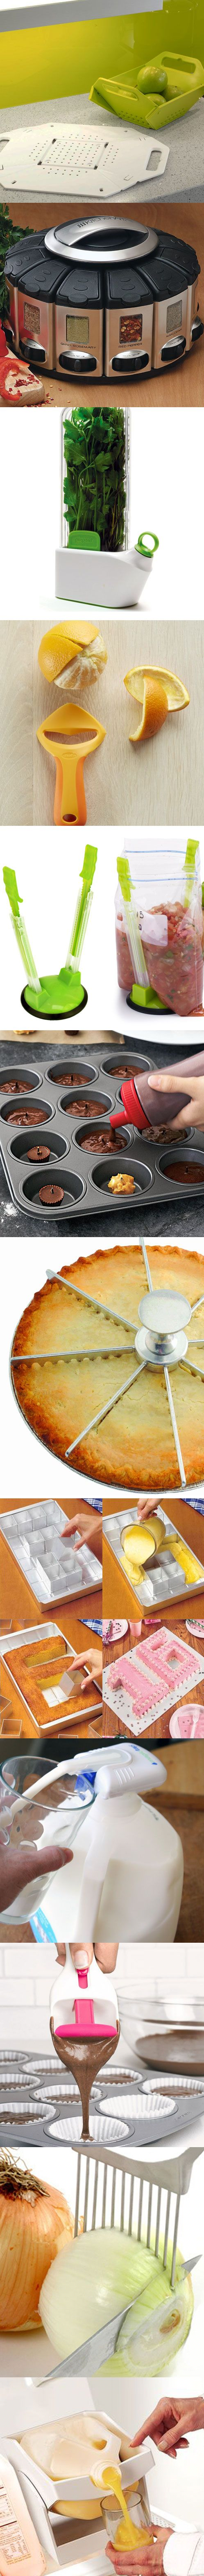 95 best Kitchen Toys images on Pinterest